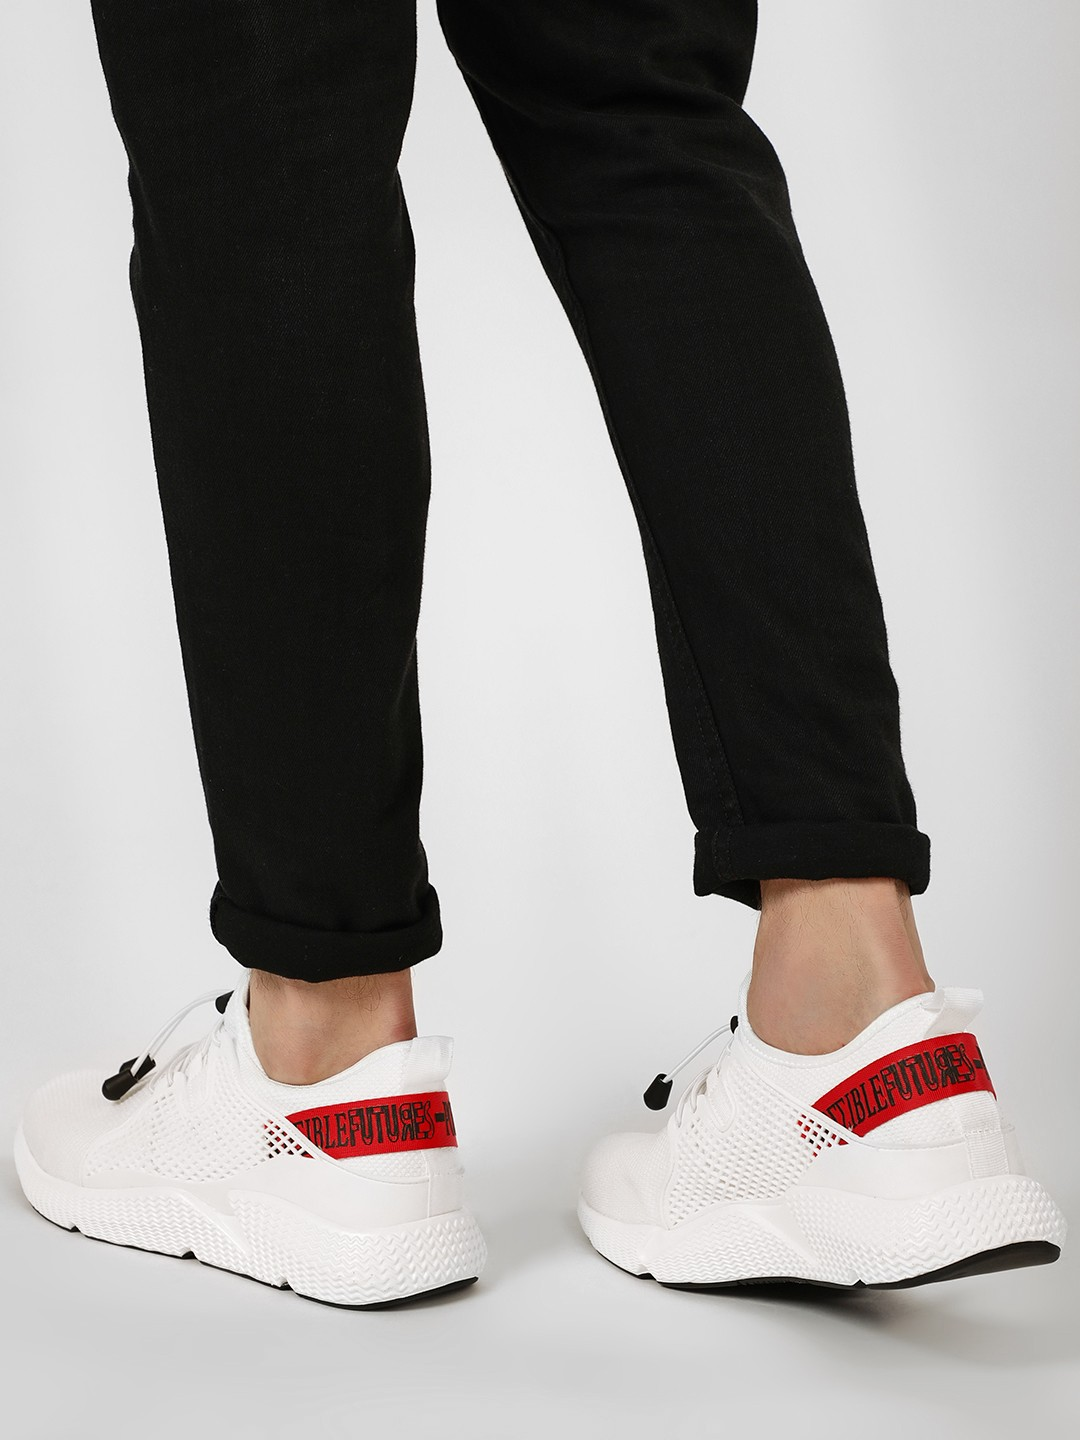 Kindred White Contrast Slogan Tape Lazer Sneakers 1